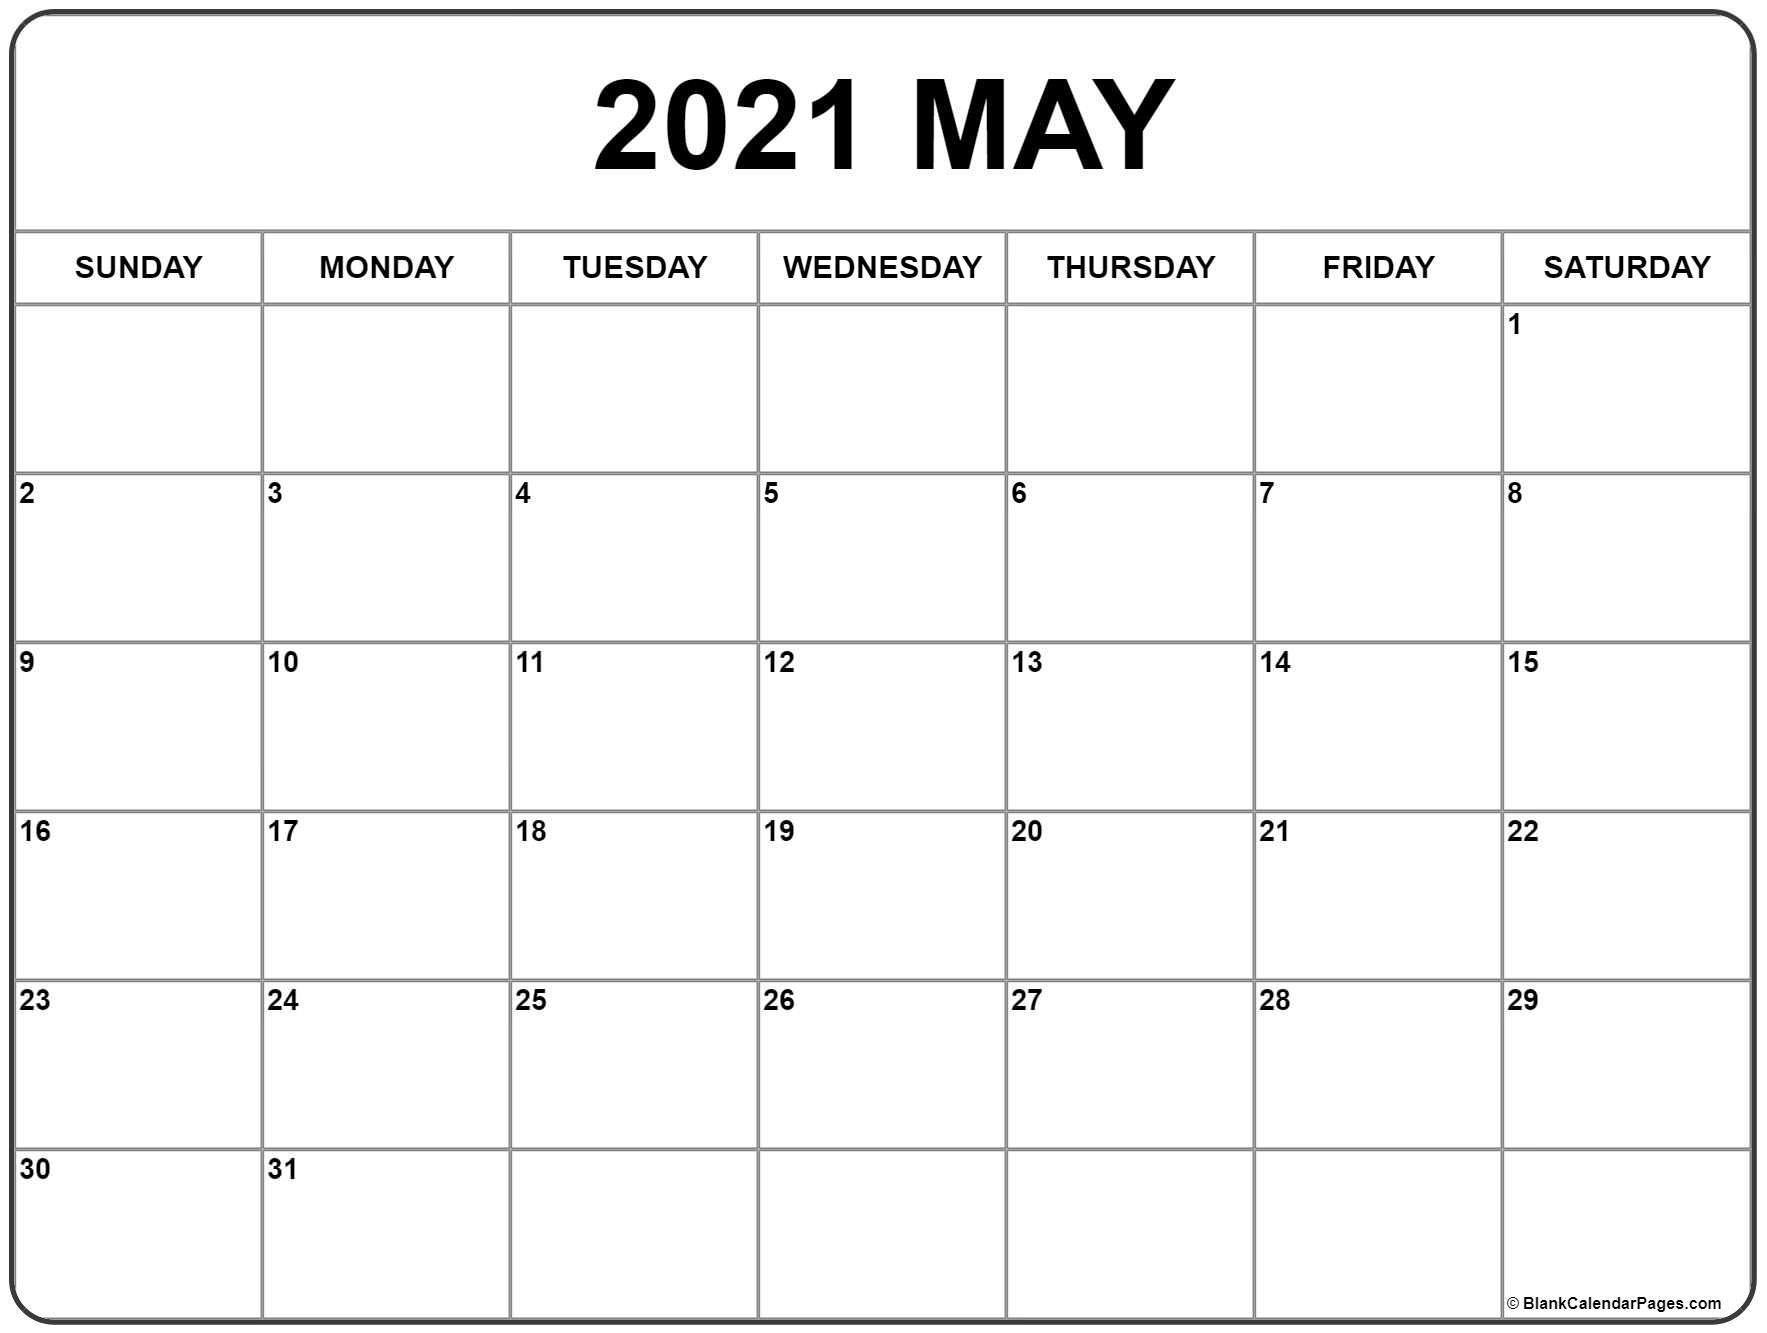 May 2021 Calendar   Free Printable Monthly Calendars-2021 Monthly Fill In The Blanks Print Out